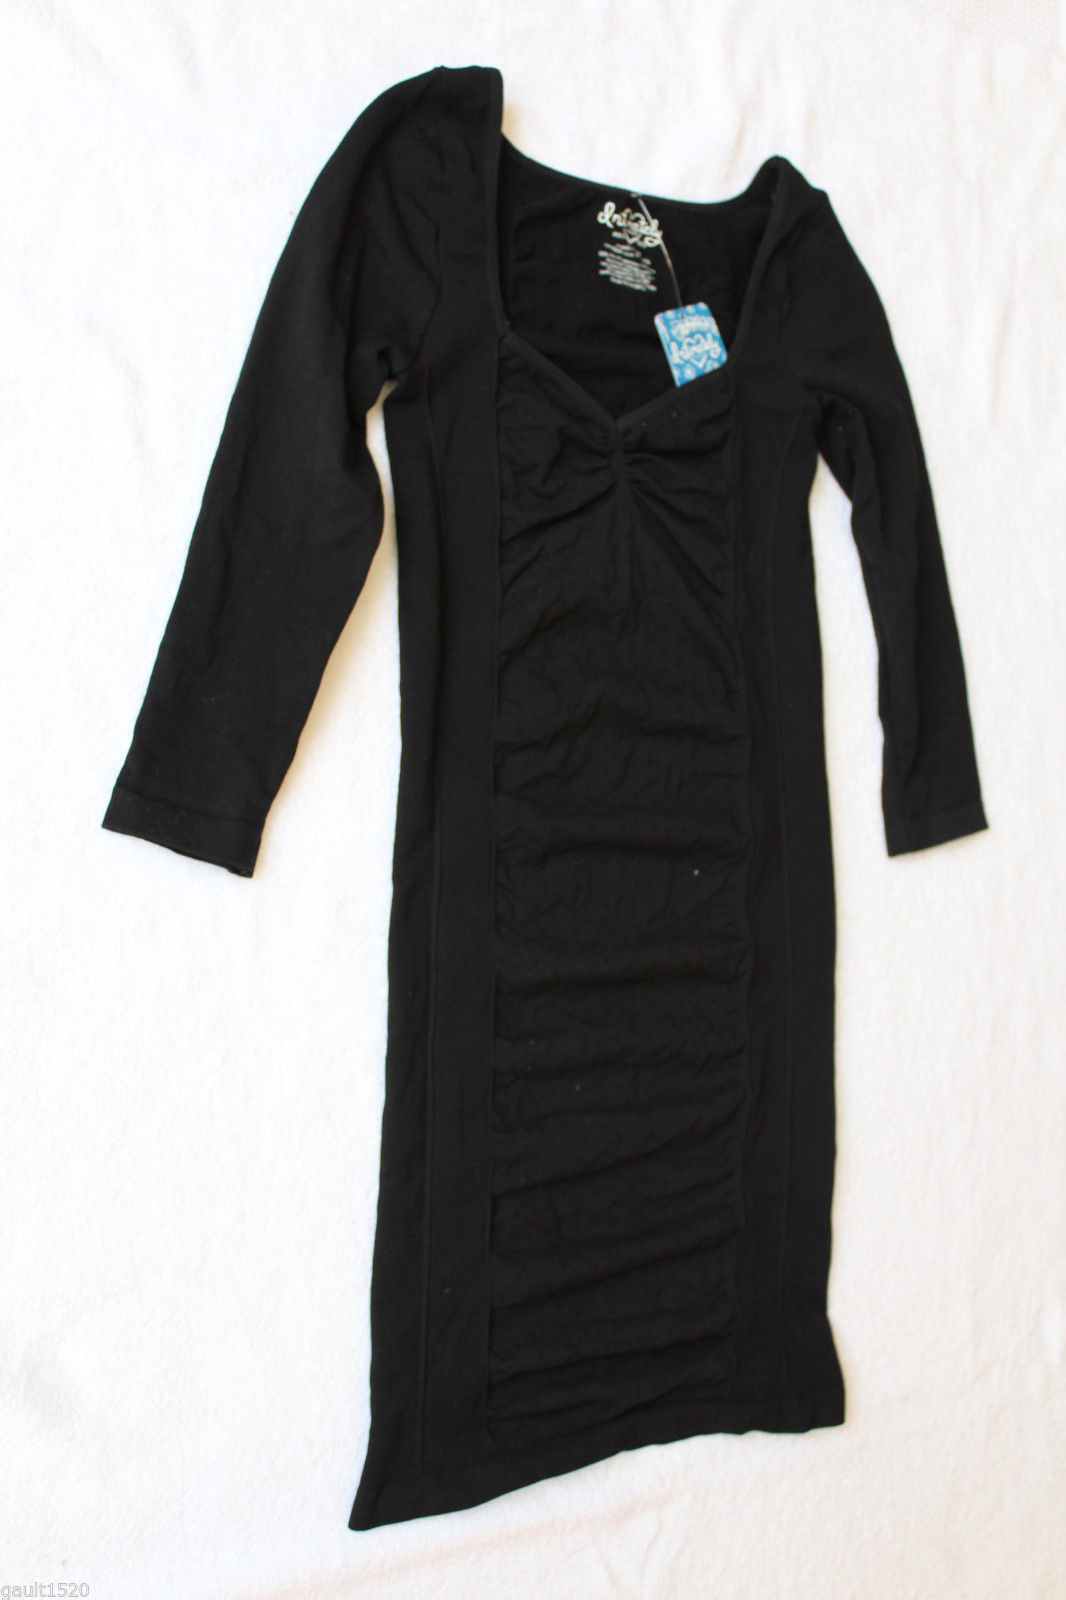 NWT Free People Intimately Sexy Black BodyCon Sheath Ruched Dot Dress XS S $128